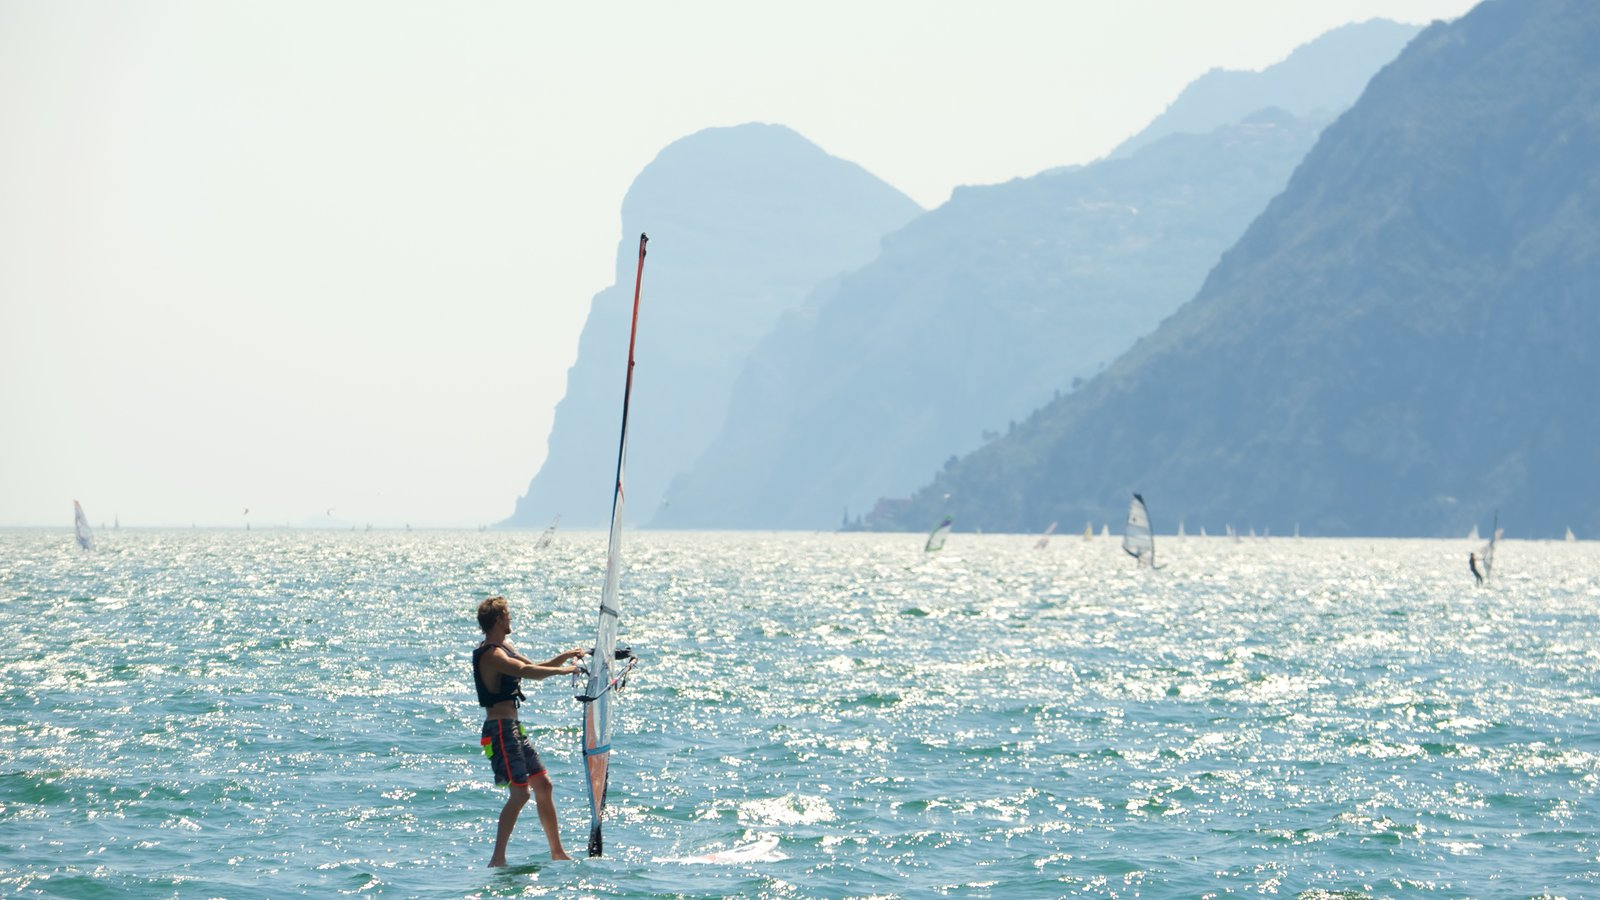 Nago-Torbole featuring general coastal views, mountains and windsurfing